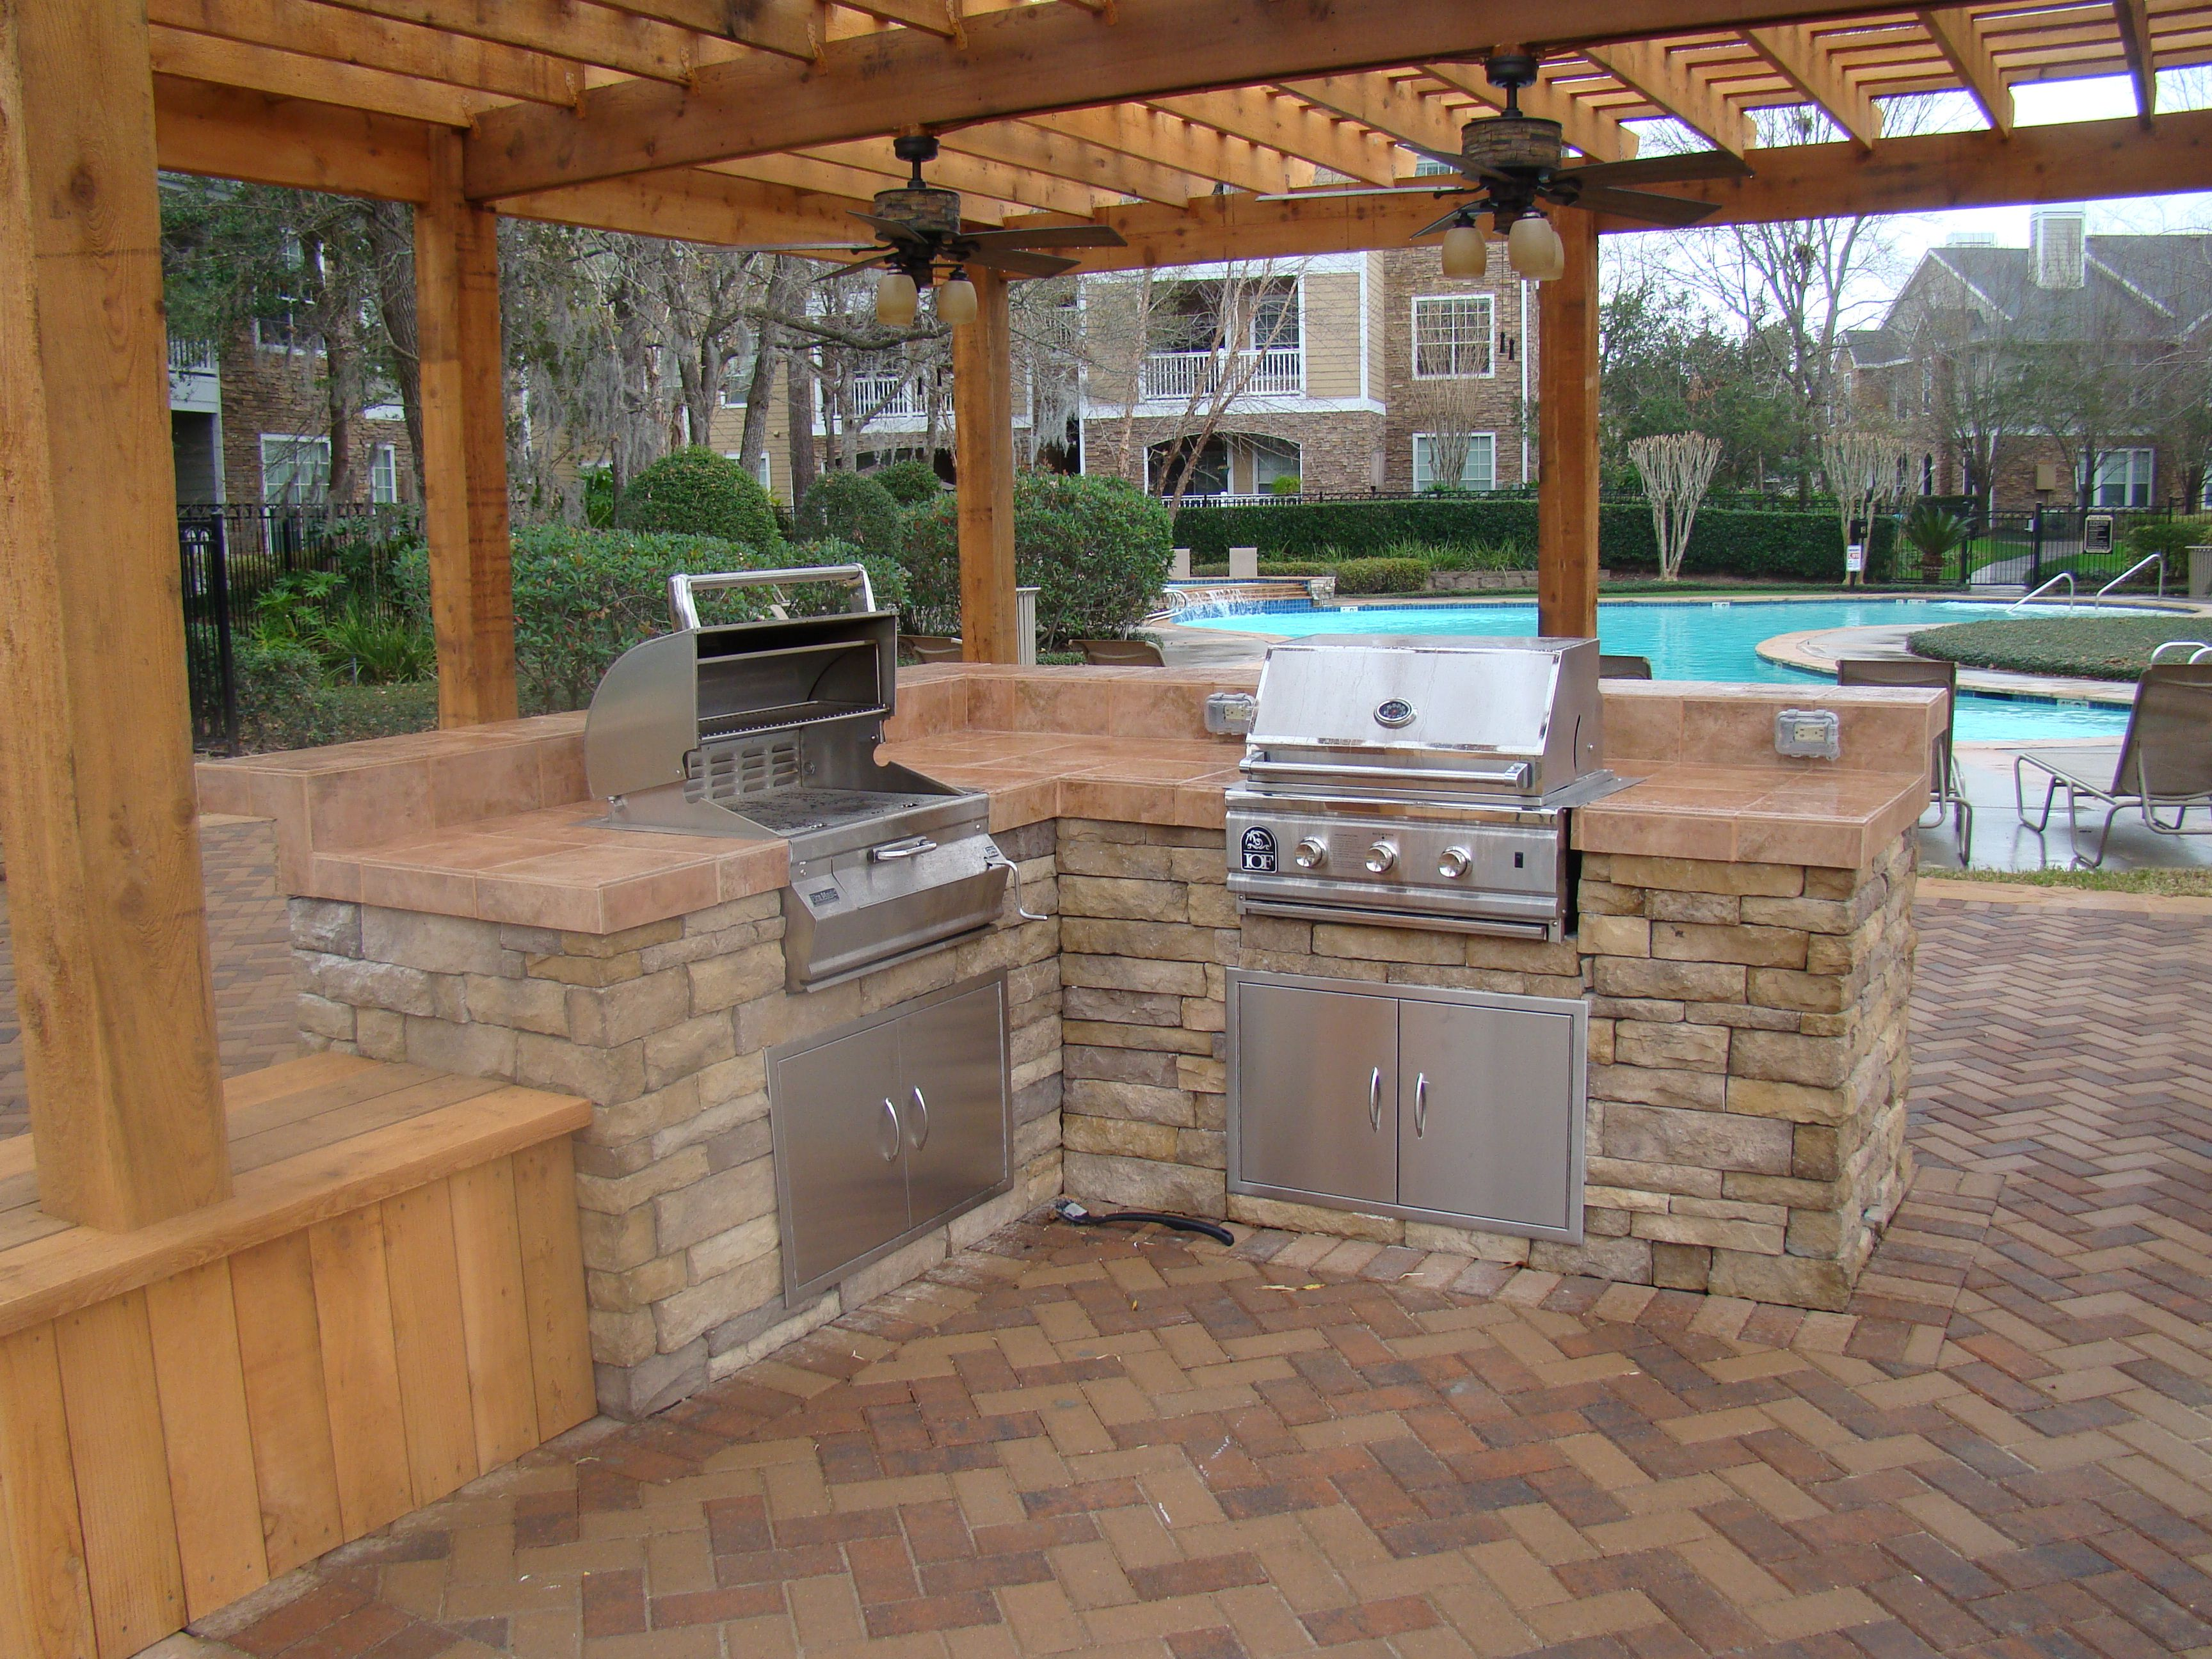 18 outdoor kitchen ideas for backyards kitchens for Plans for an outdoor kitchen